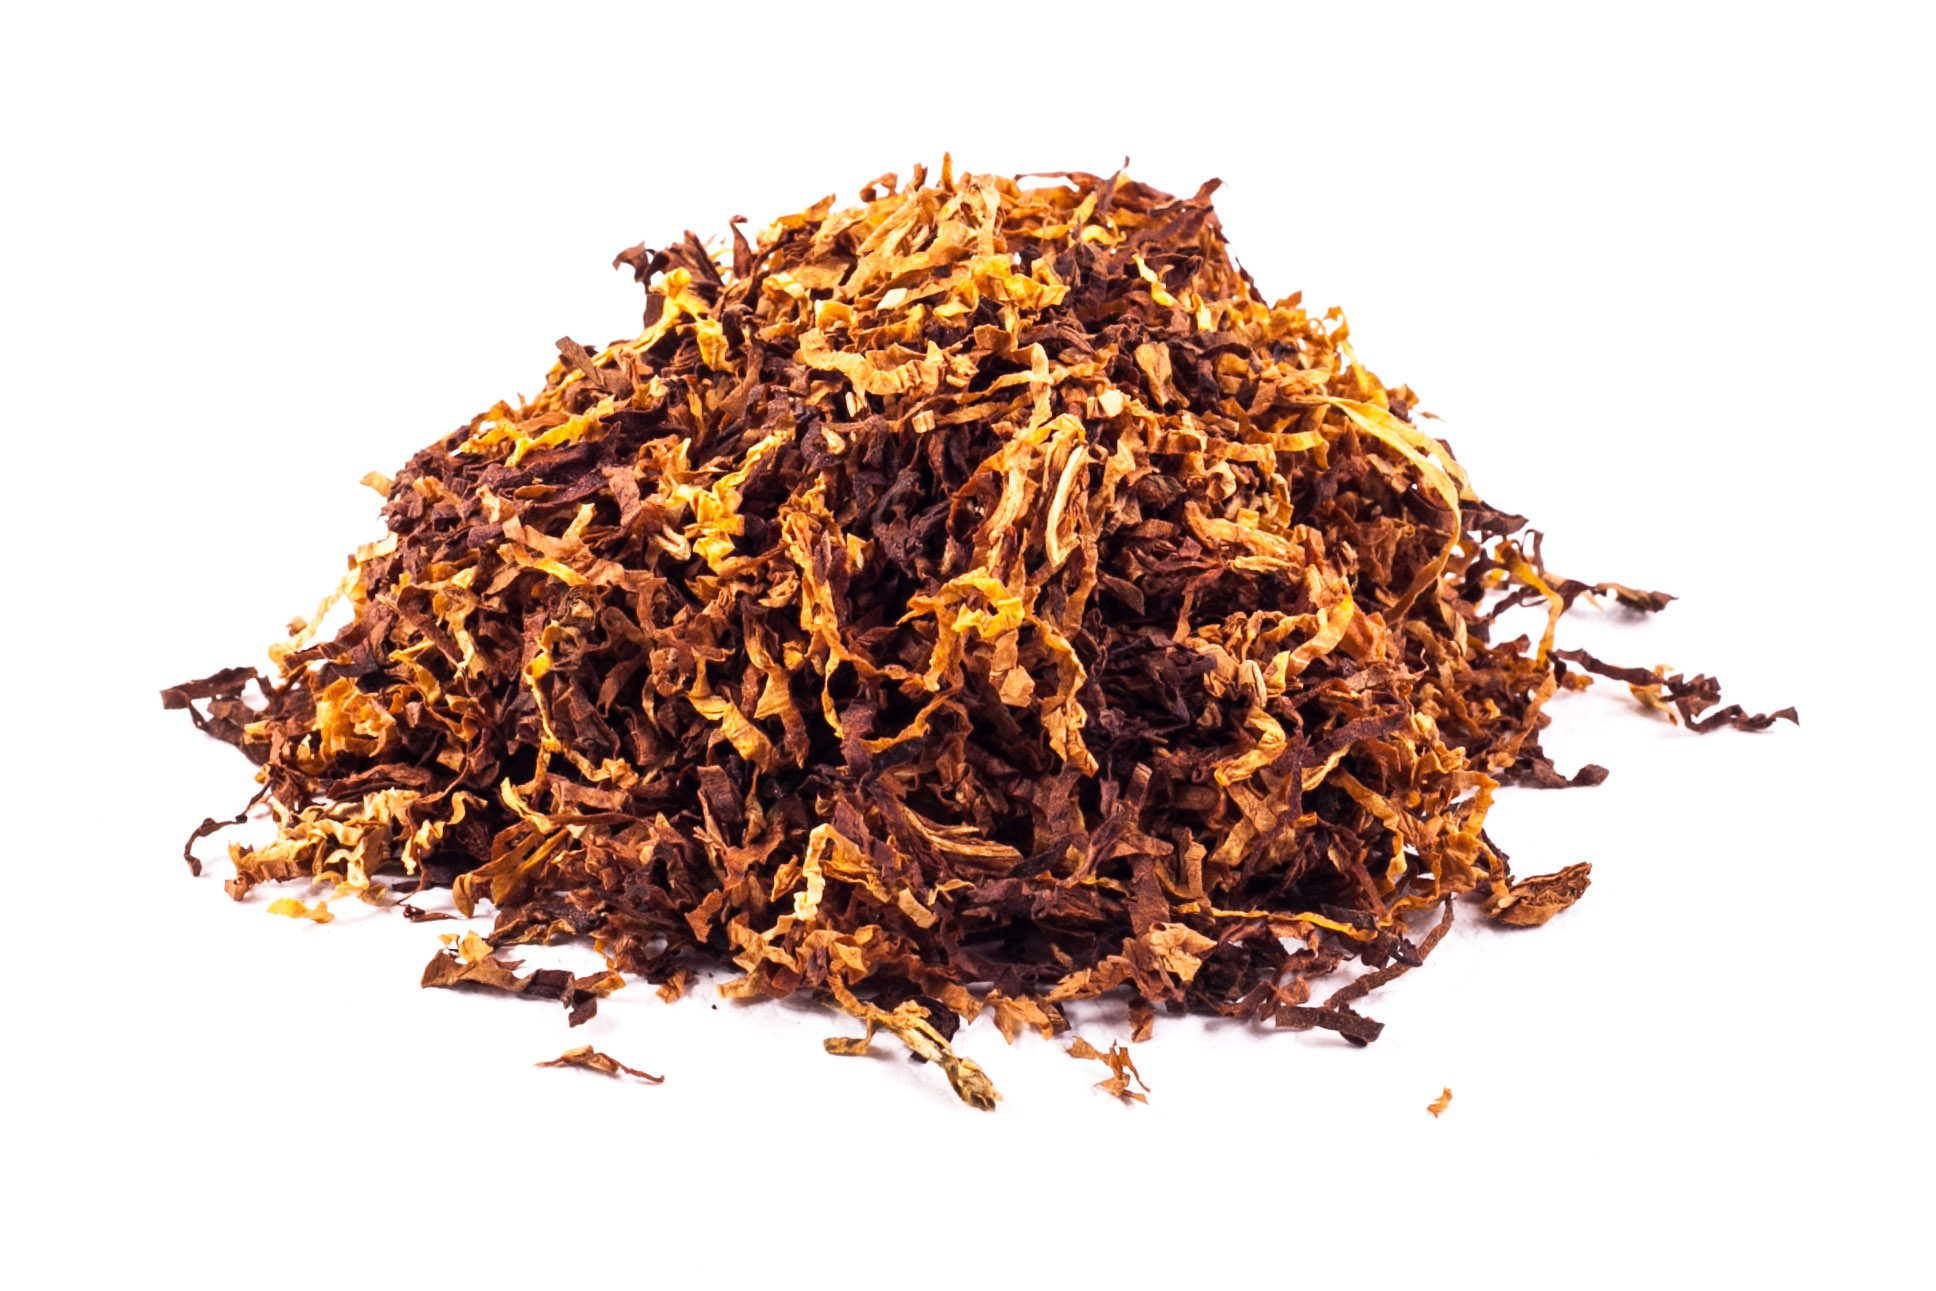 Some things about tobacco